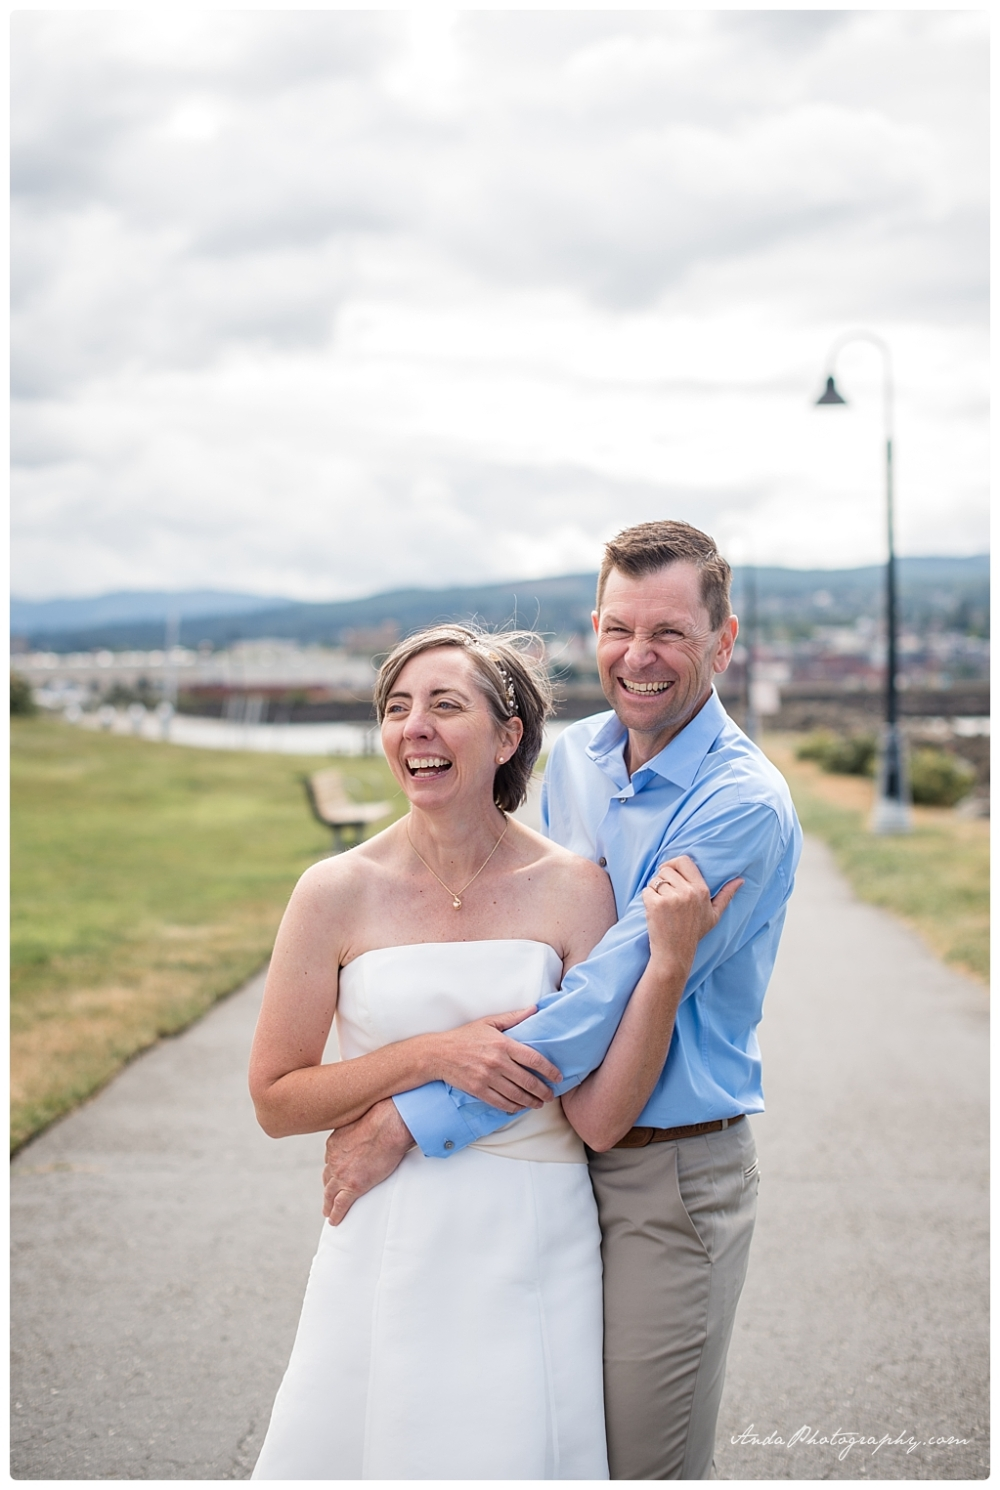 Anda Photography Bellingham wedding photographer seattle wedding photographer lifestyle wedding photographer Zuanich Park wedding Little Squalicum Boathouse wedding_0011